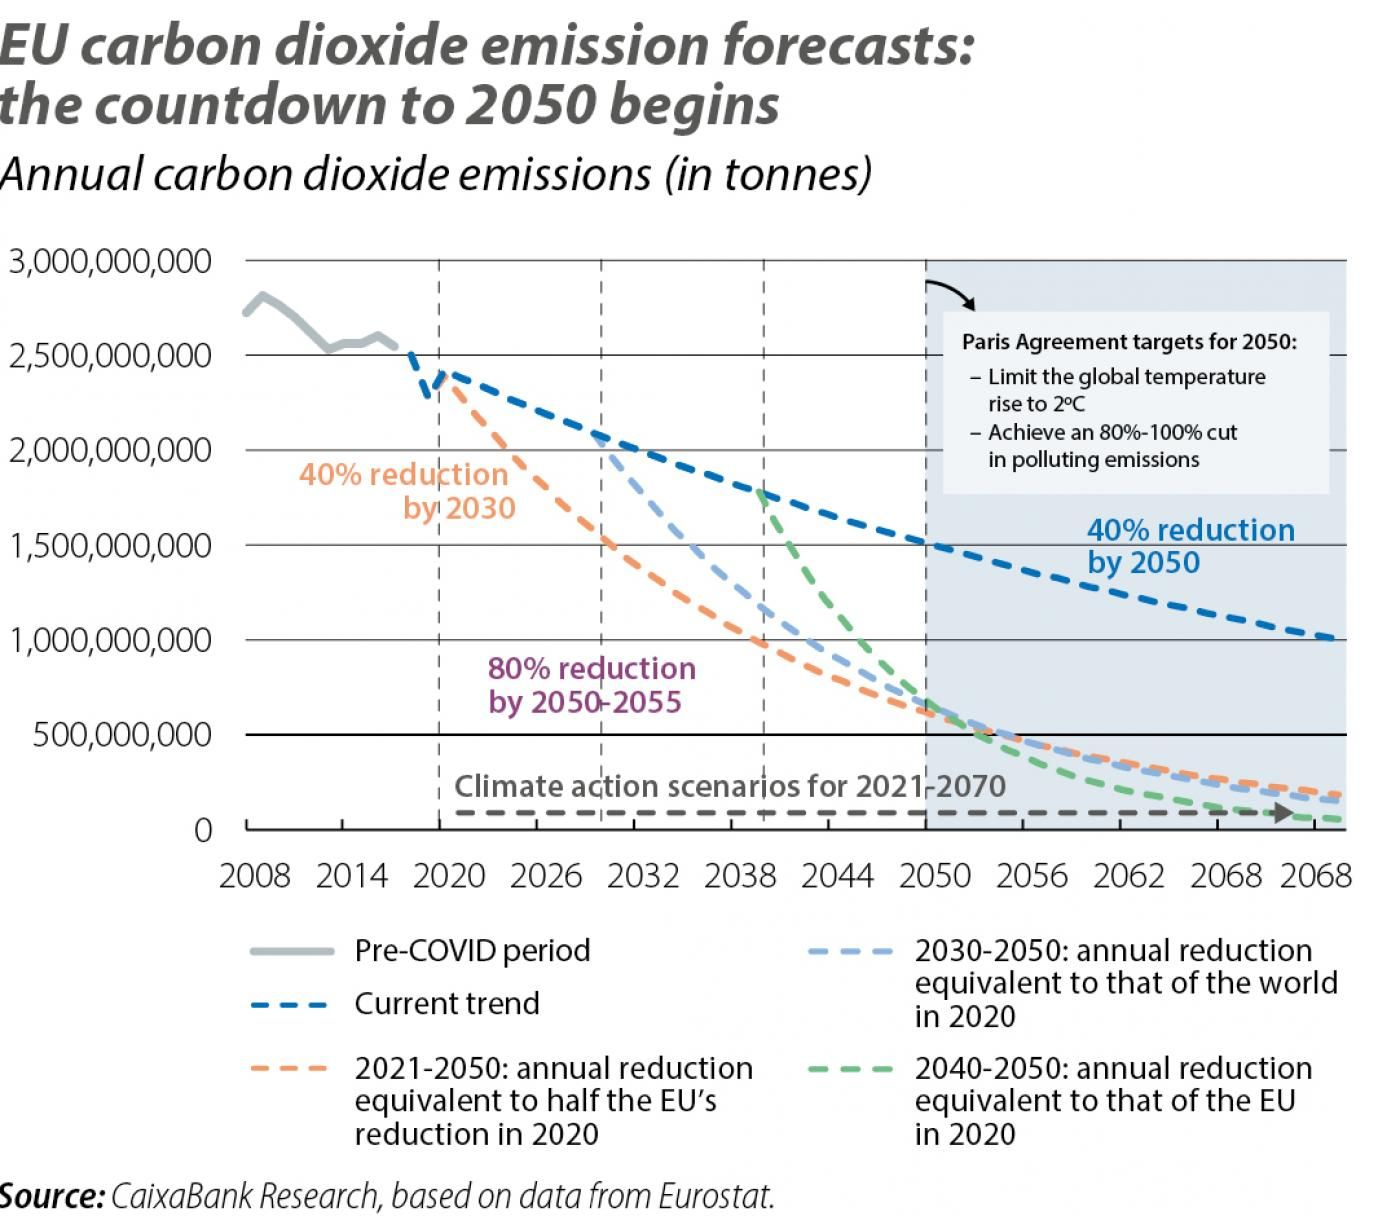 EU carbon dioxide emission forecasts: the countdown to 2050 begins